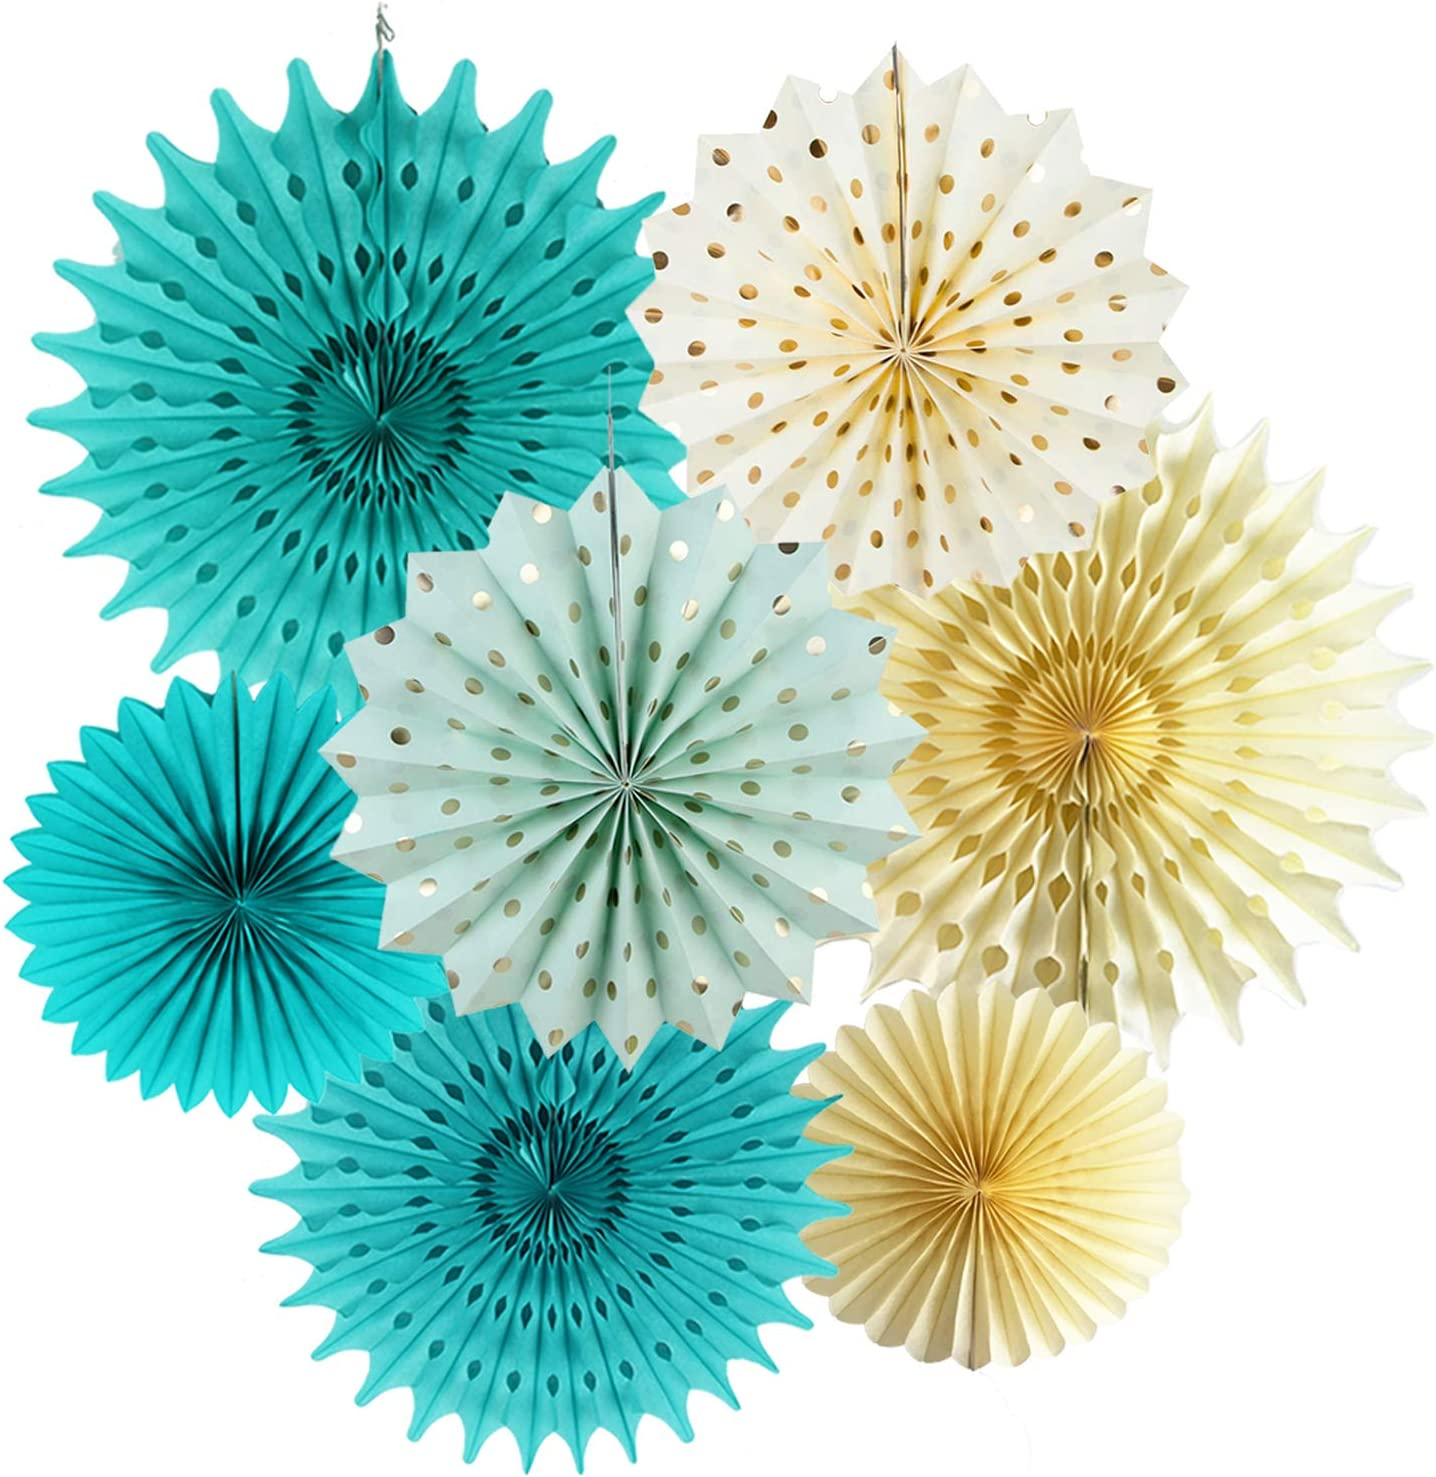 Teal Gold Party Decorations Cream Mint Gold Polka Dot Paper Fans for Teal Bridal Shower Decorations Teal Gold Wedding/Teal Gold First Birthday Decorations